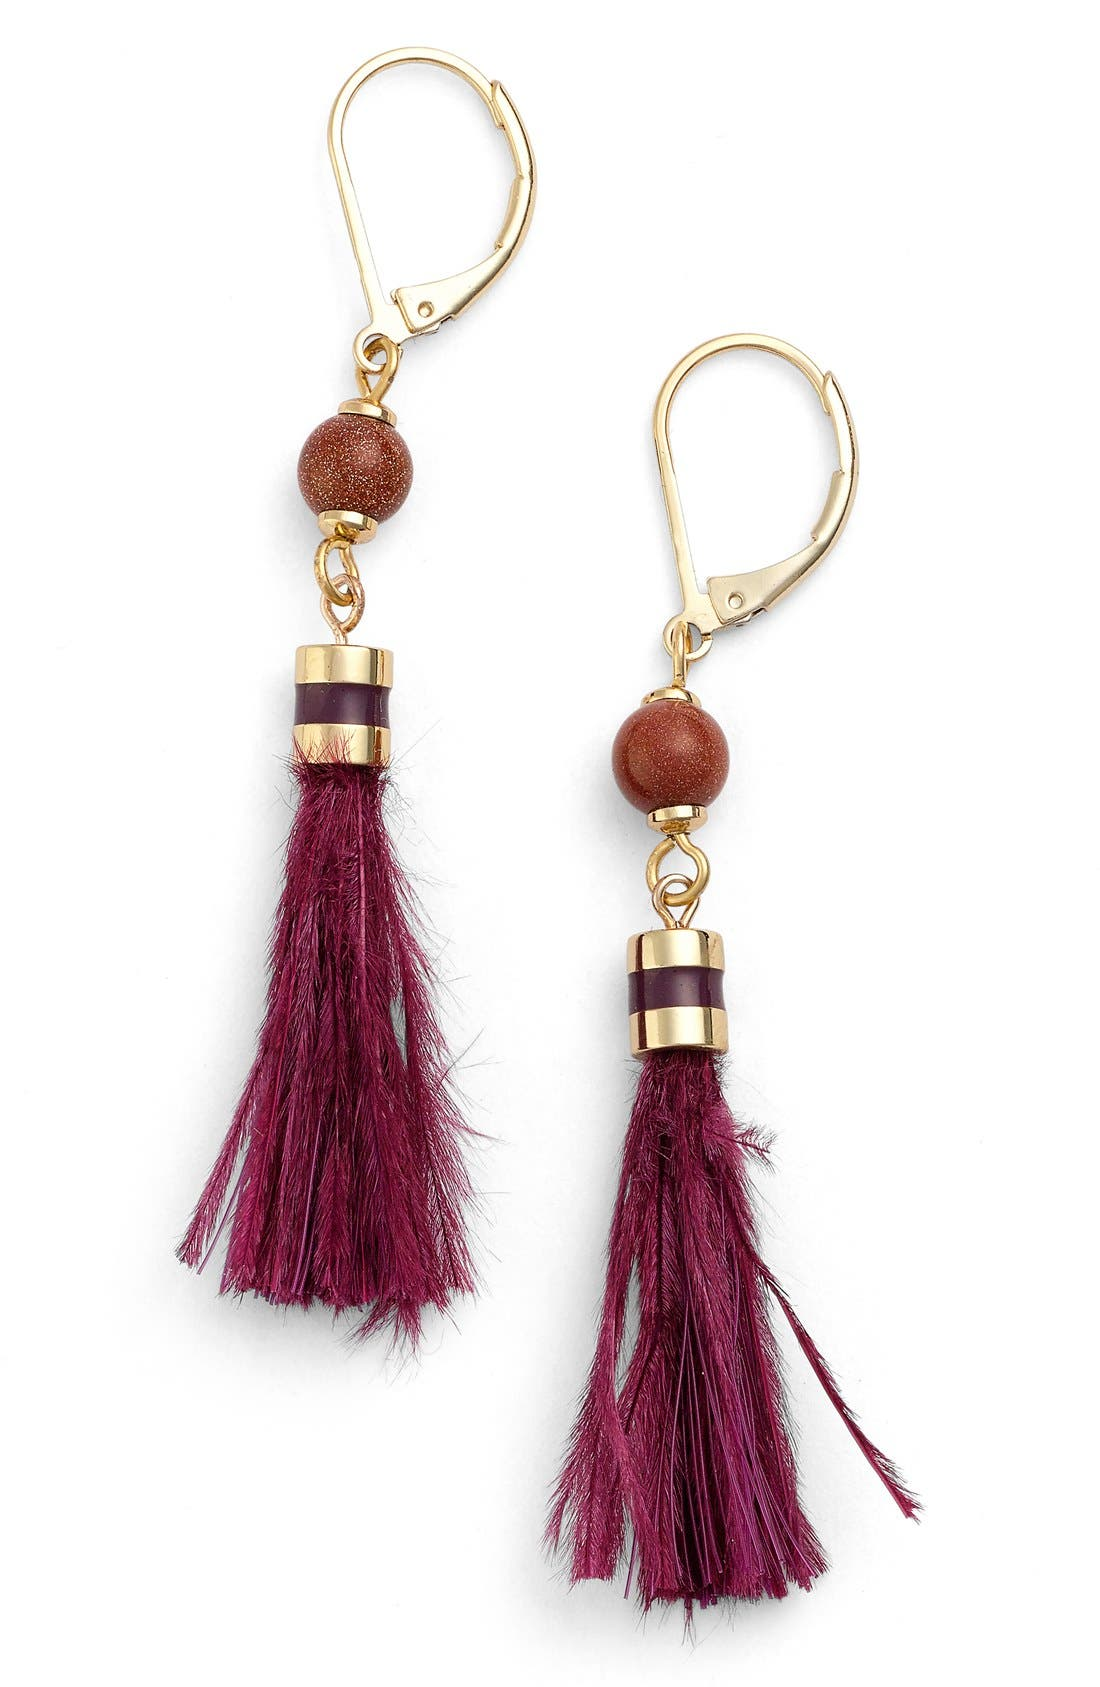 Alternate Image 1 Selected - kate spade new york 'swing time' small tassel earrings